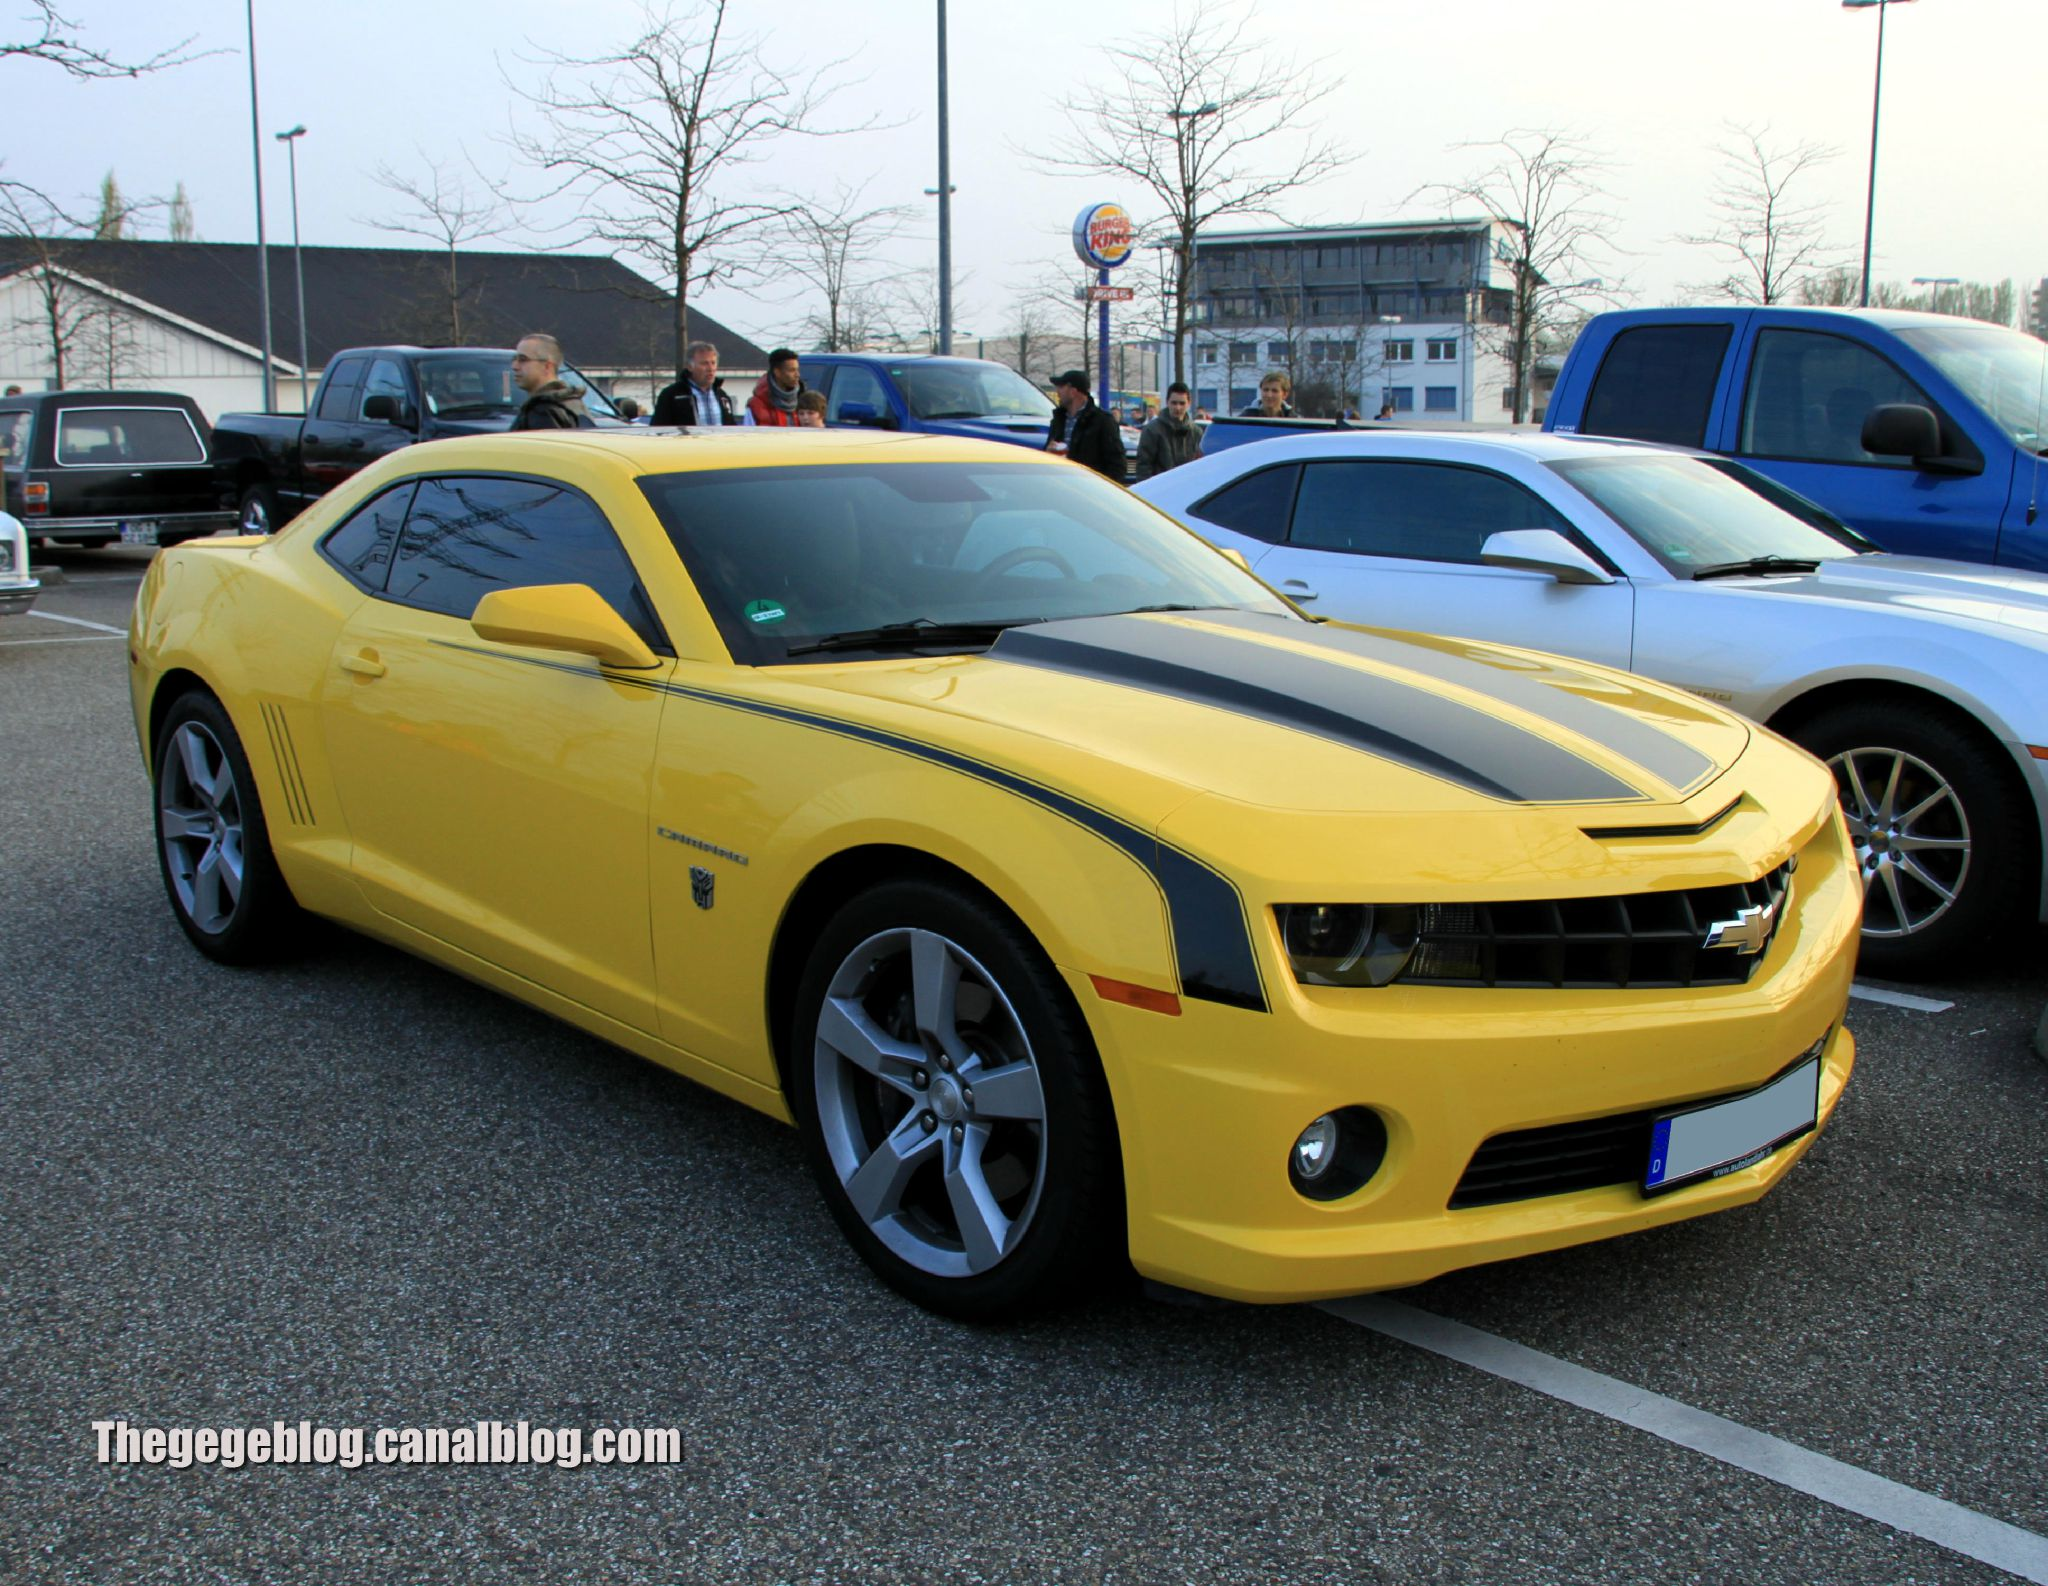 chevrolet camaro ss de 2011 rencard burger king avril 2012 the g g blog. Black Bedroom Furniture Sets. Home Design Ideas